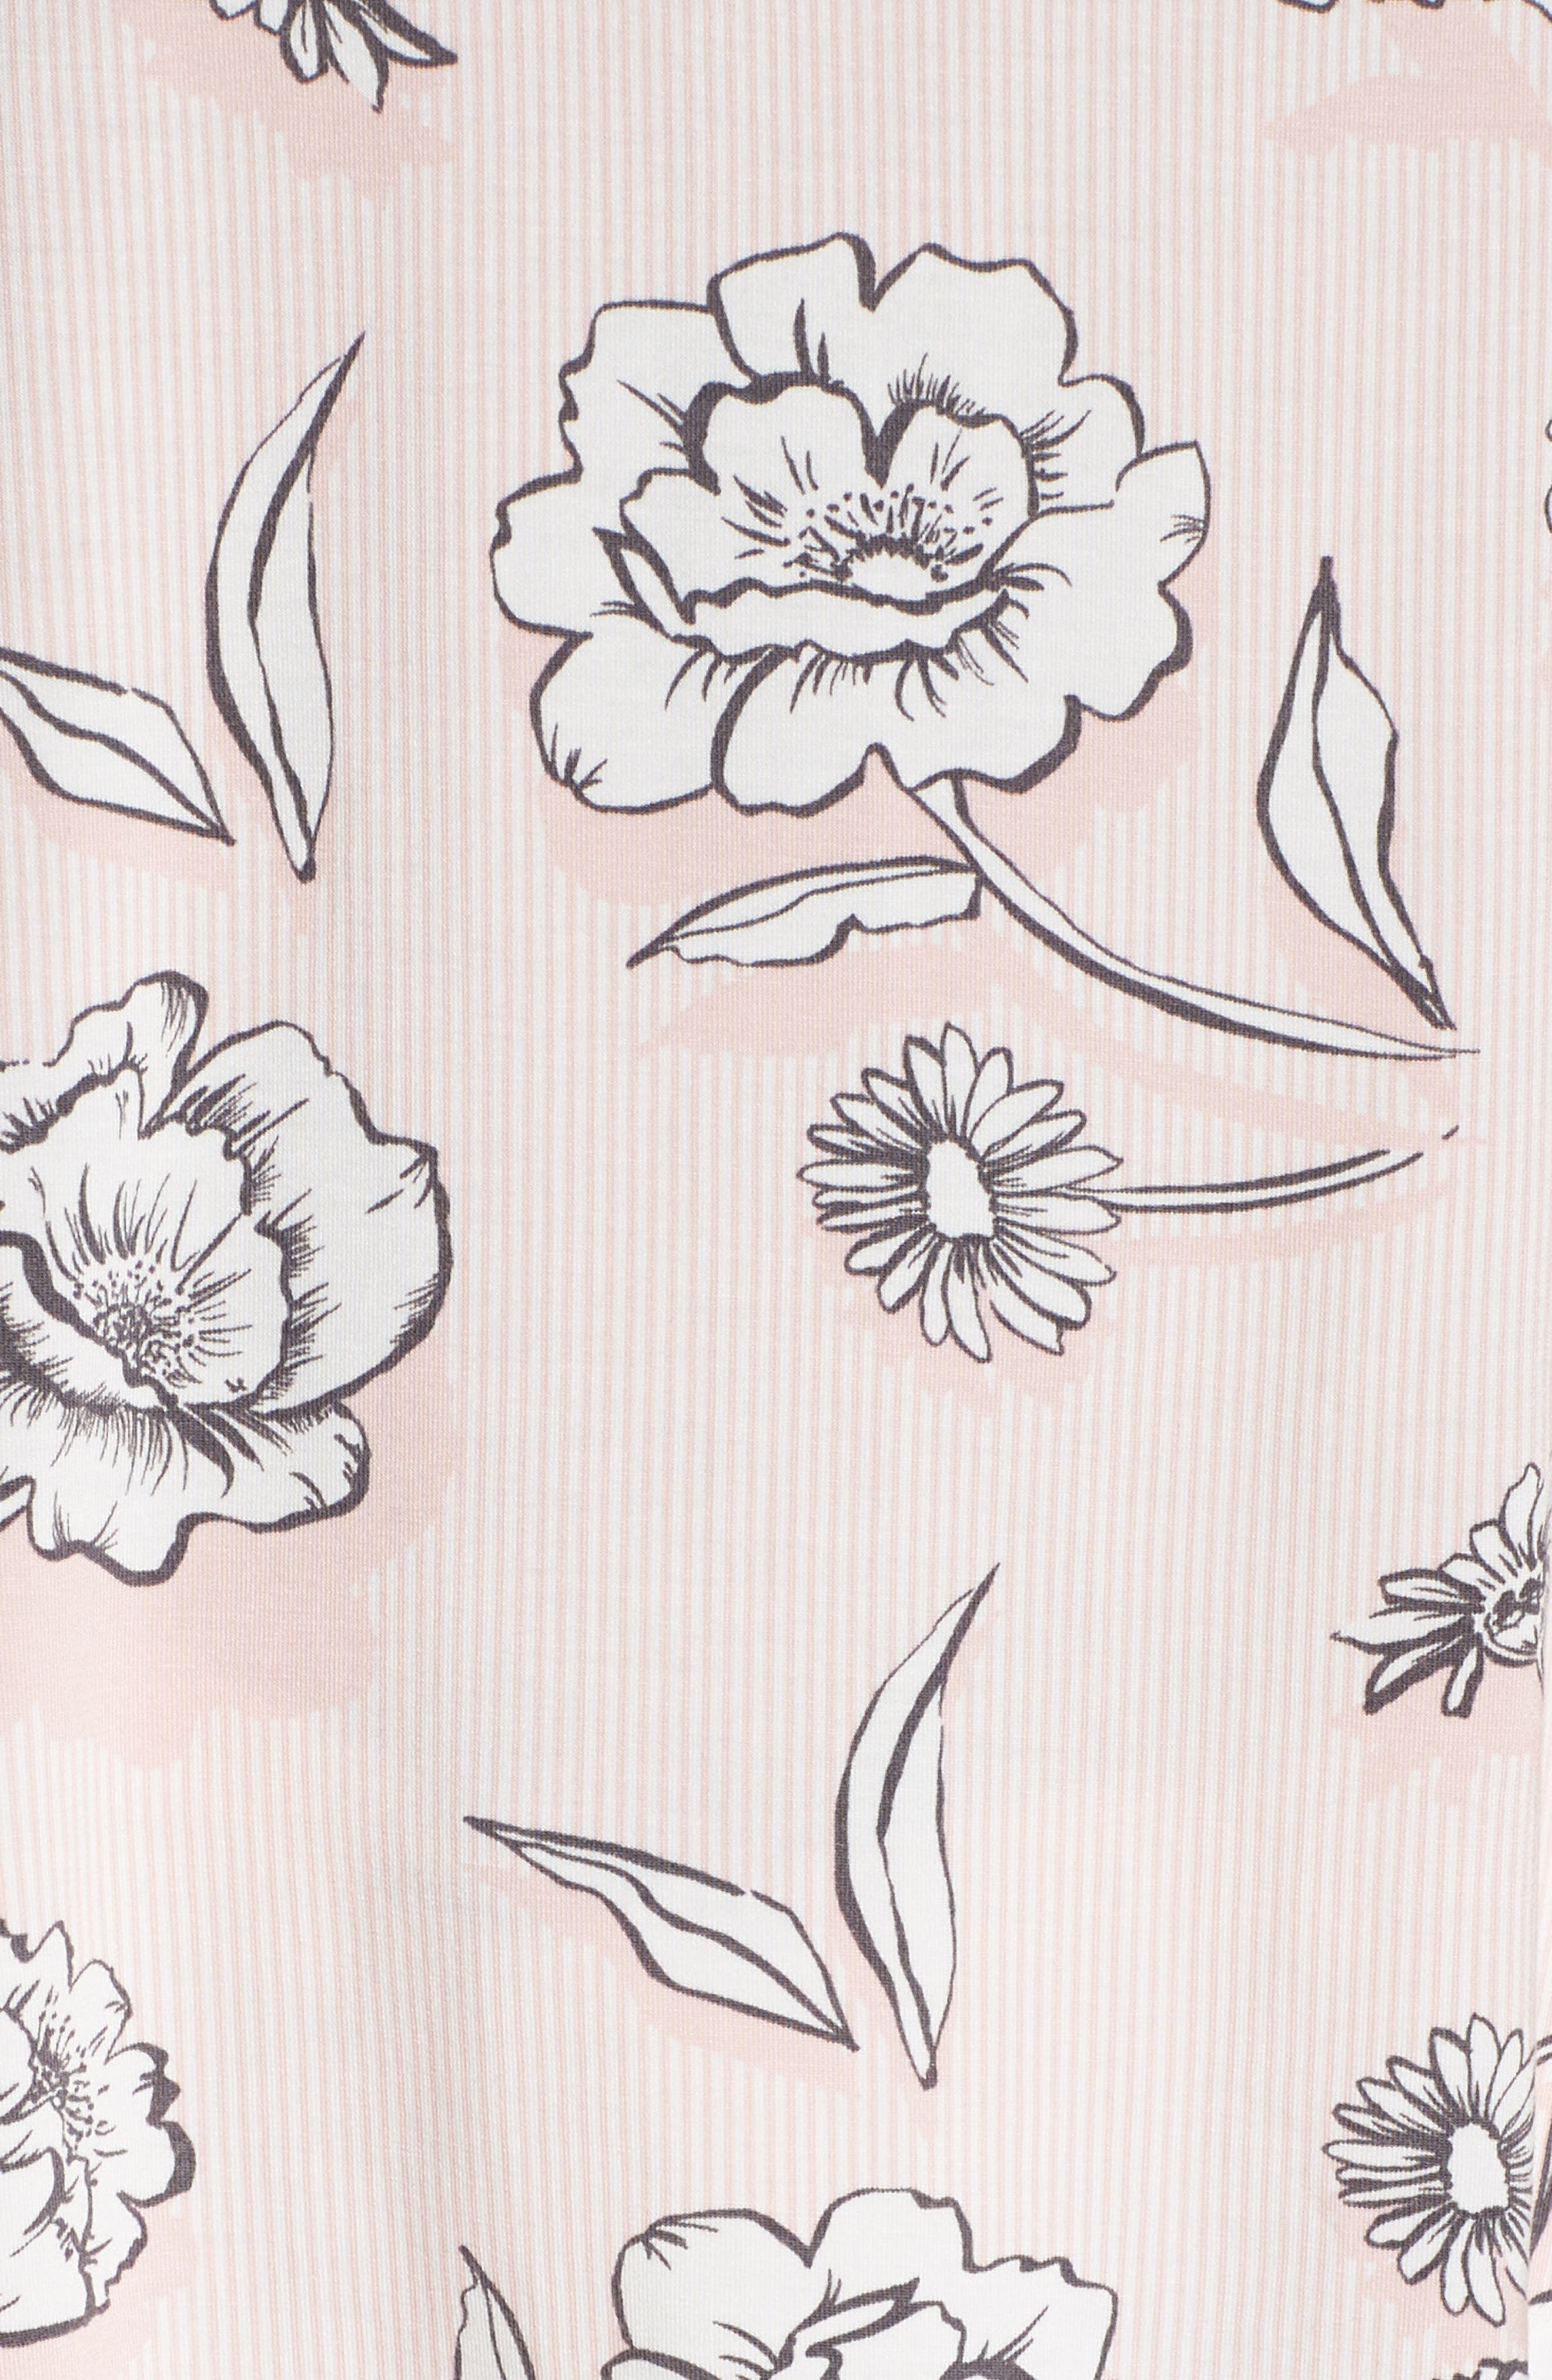 Shadow Floral Camisole,                             Alternate thumbnail 5, color,                             BLUSH